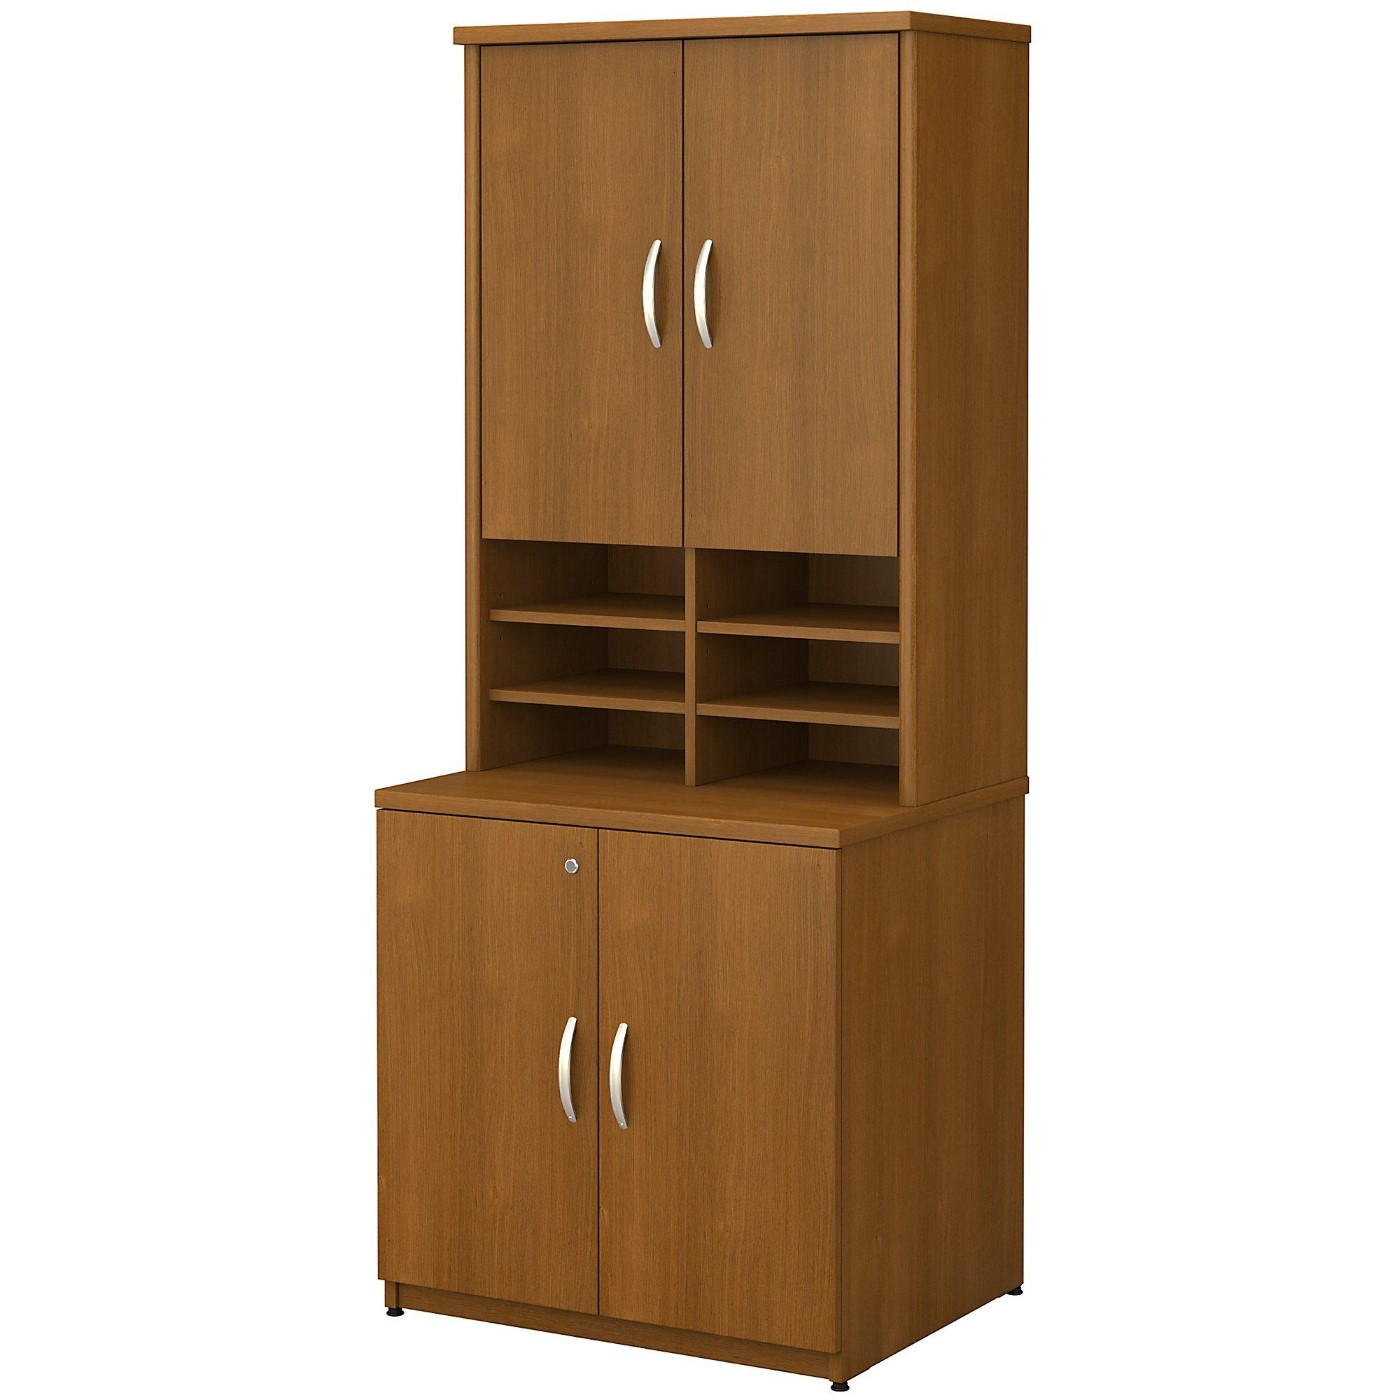 <font color=#c60><b>BUSH BUSINESS FURNITURE SERIES C 30W STORAGE CABINET WITH HUTCH. FREE SHIPPING</font></b>